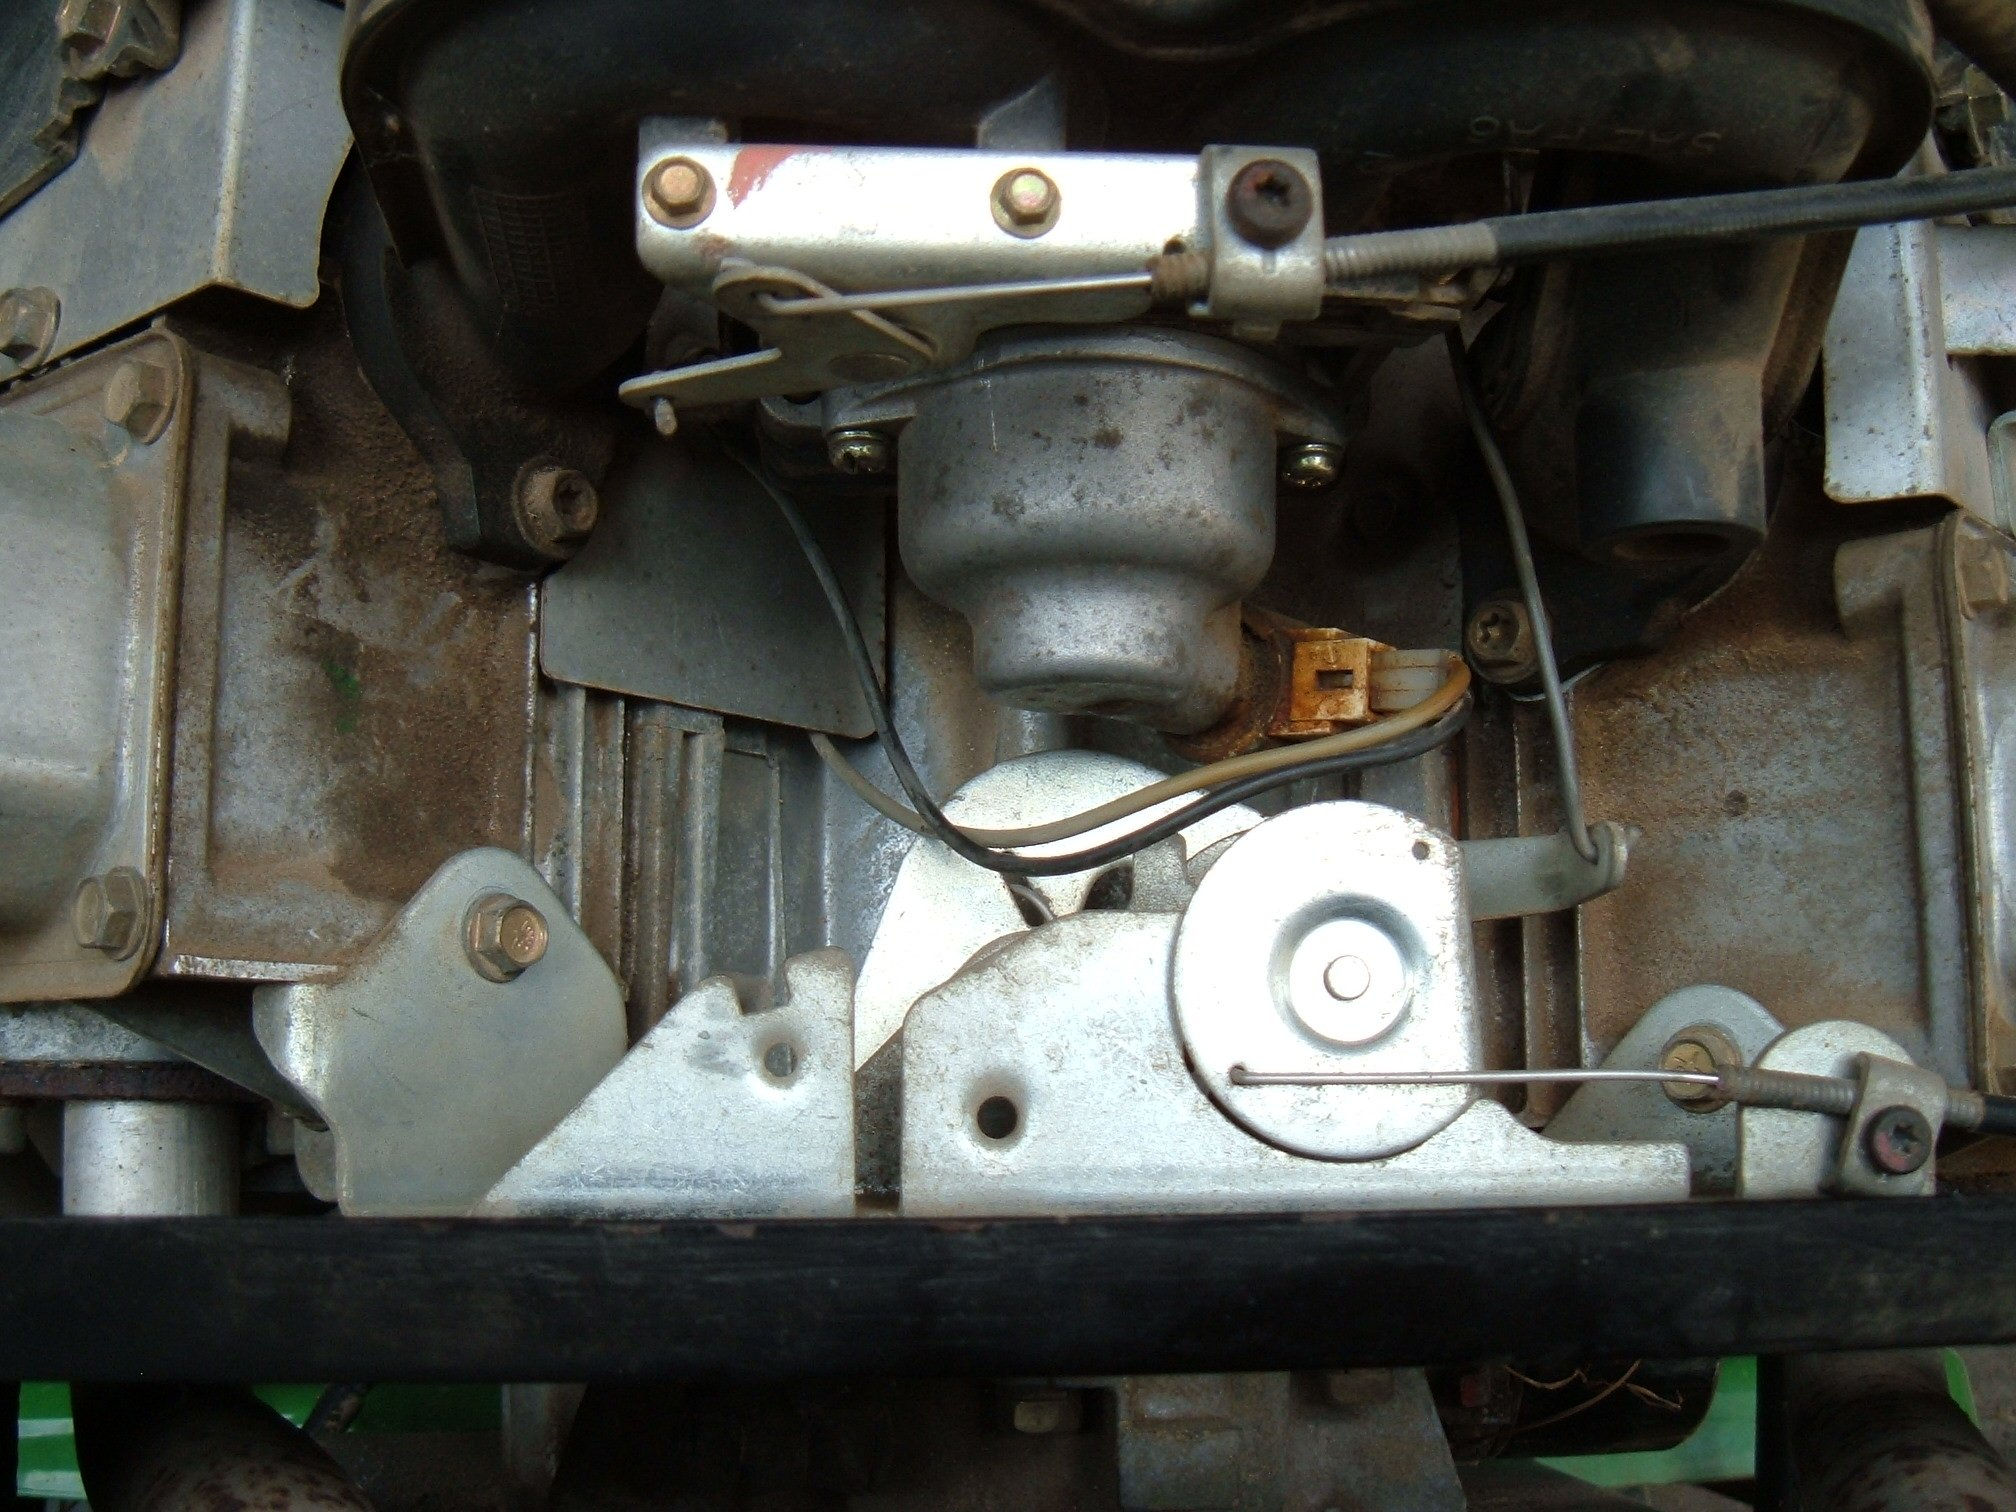 I Have A Murray 12 Hp Briggs And Stratton Model 38608x12a Ride On Mower And The Linkage Broke  I